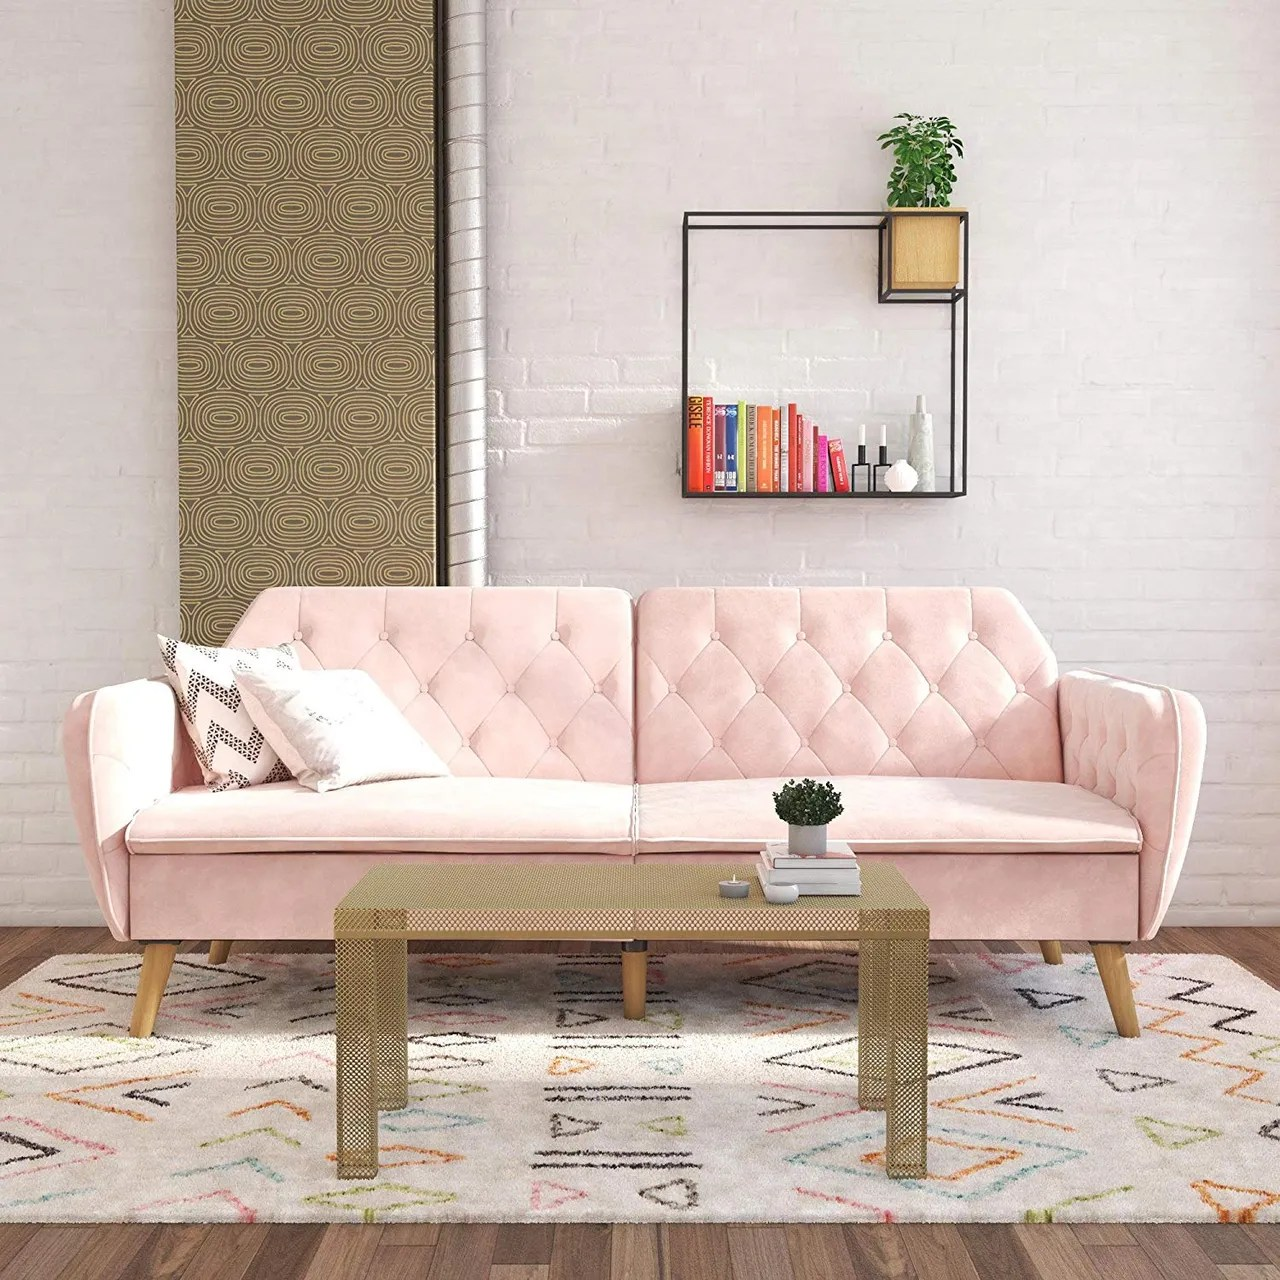 Gmk Home & Living Sofa 25 Best Amazon Prime Day 2019 Deals On Home And Decor